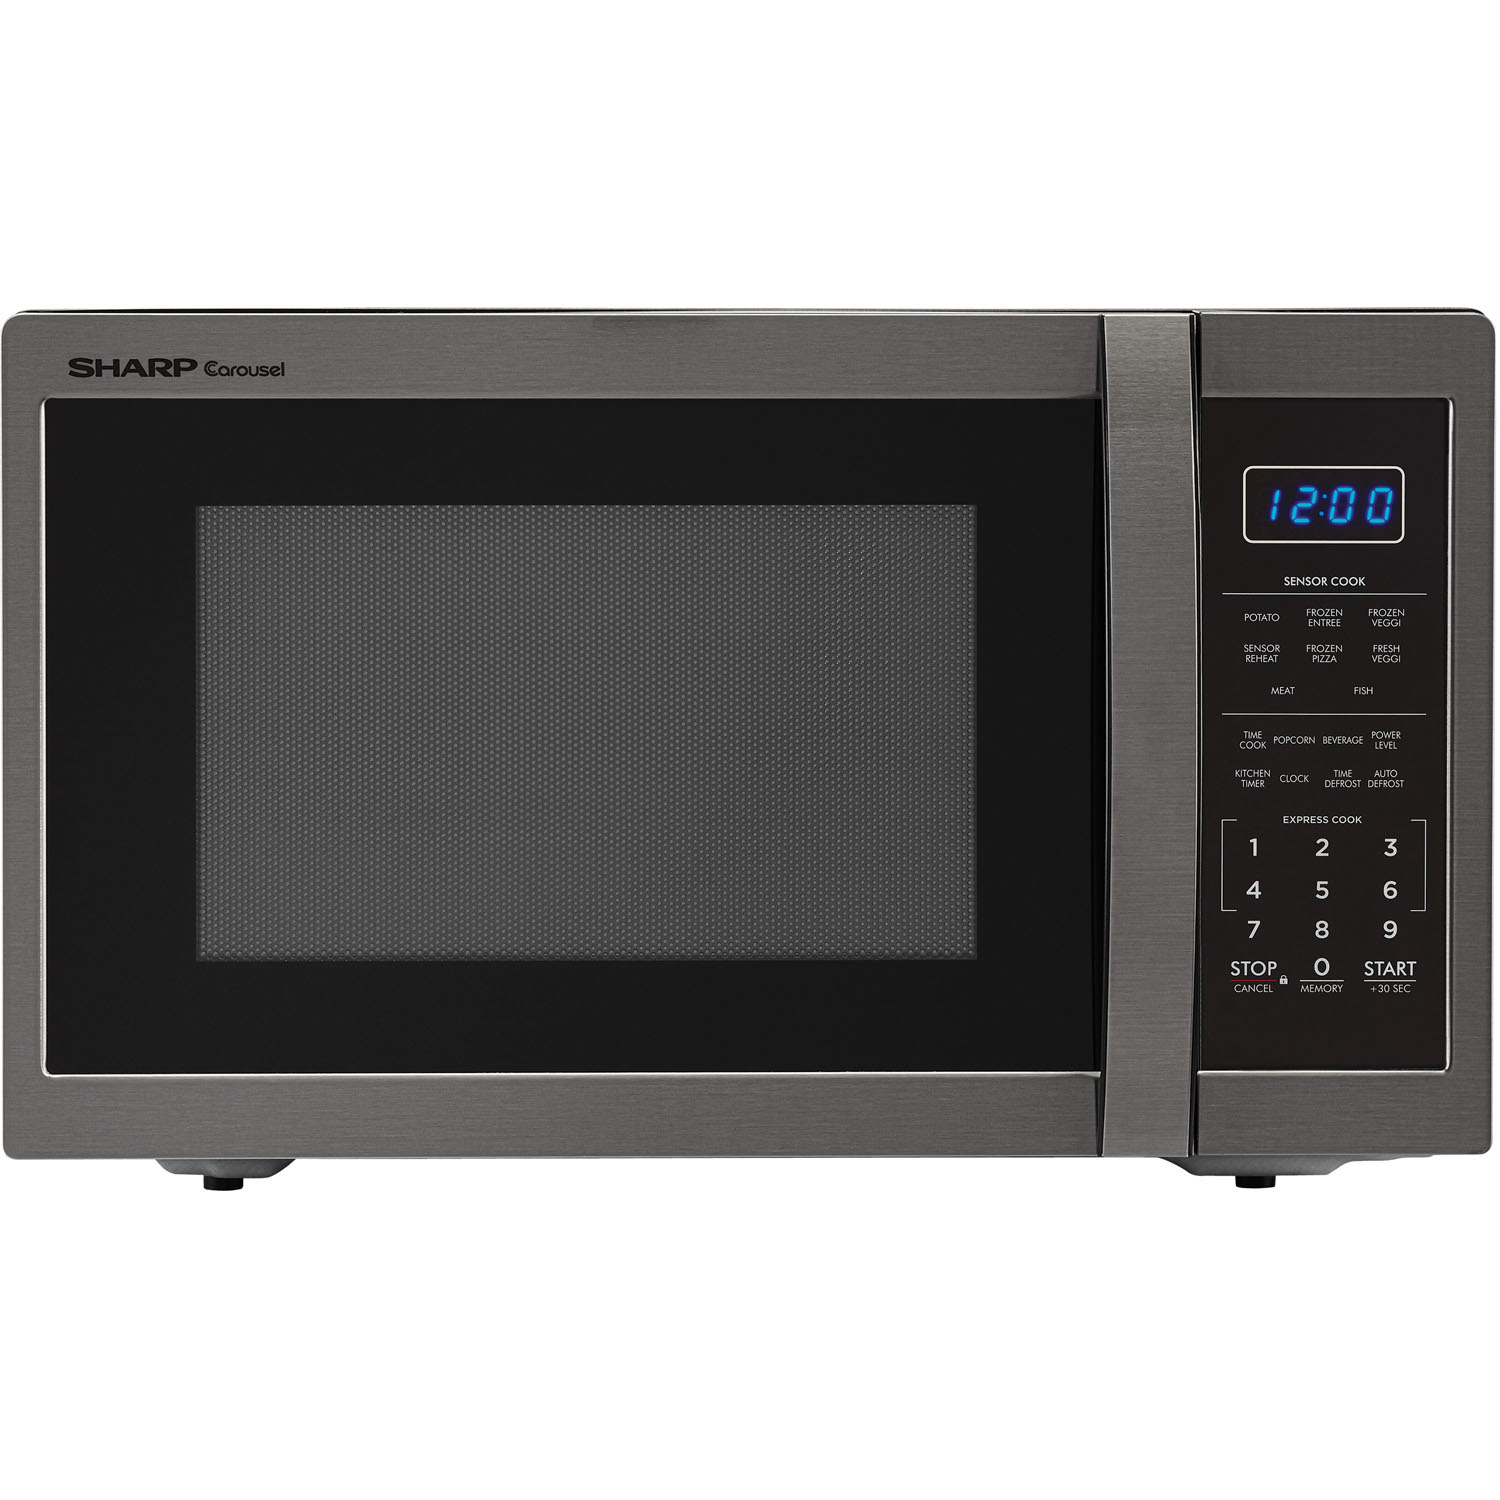 Sharp Carousel 1 4 Cu Ft 1100w Countertop Microwave Oven